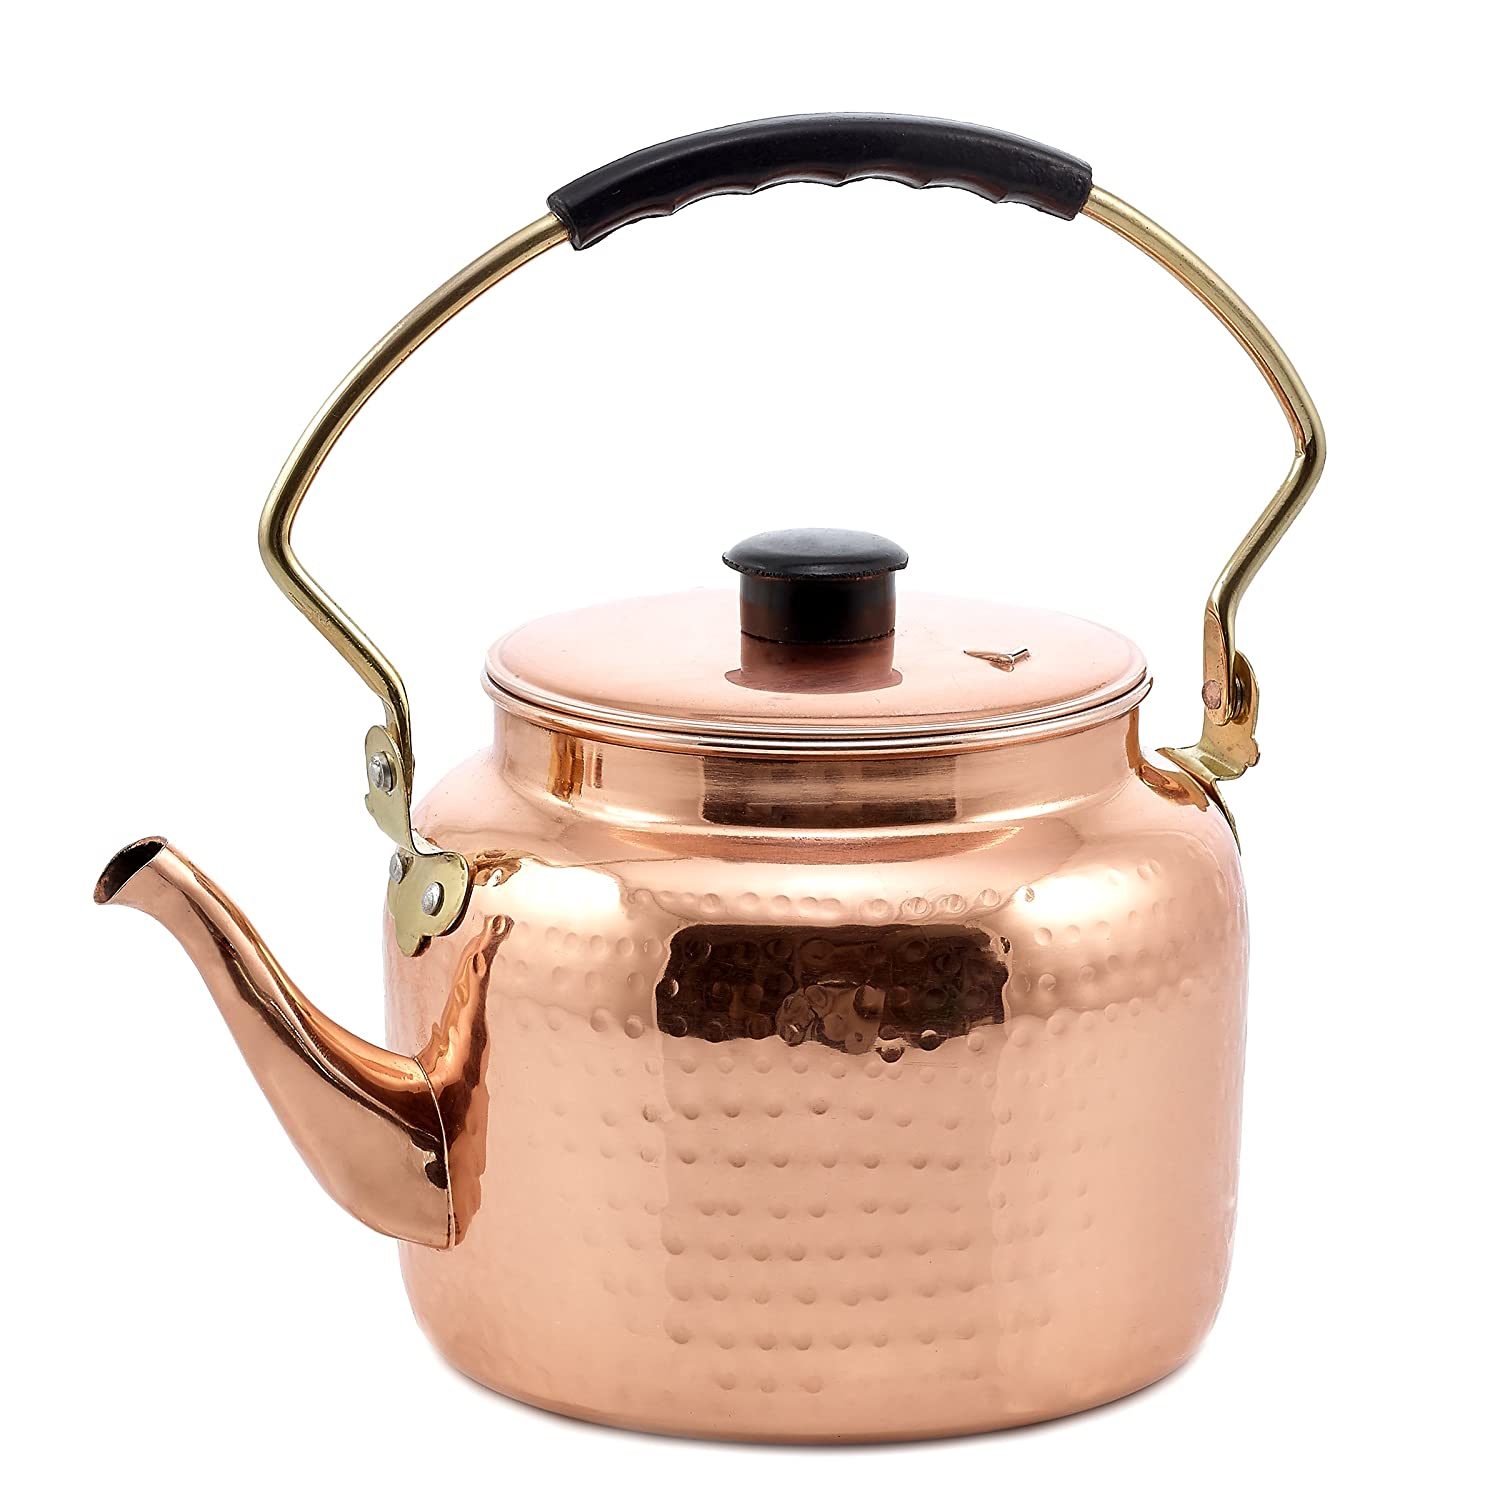 Old Dutch 875 International Hammered Tea Kettle, Copper, 2 quart Old Dutch International